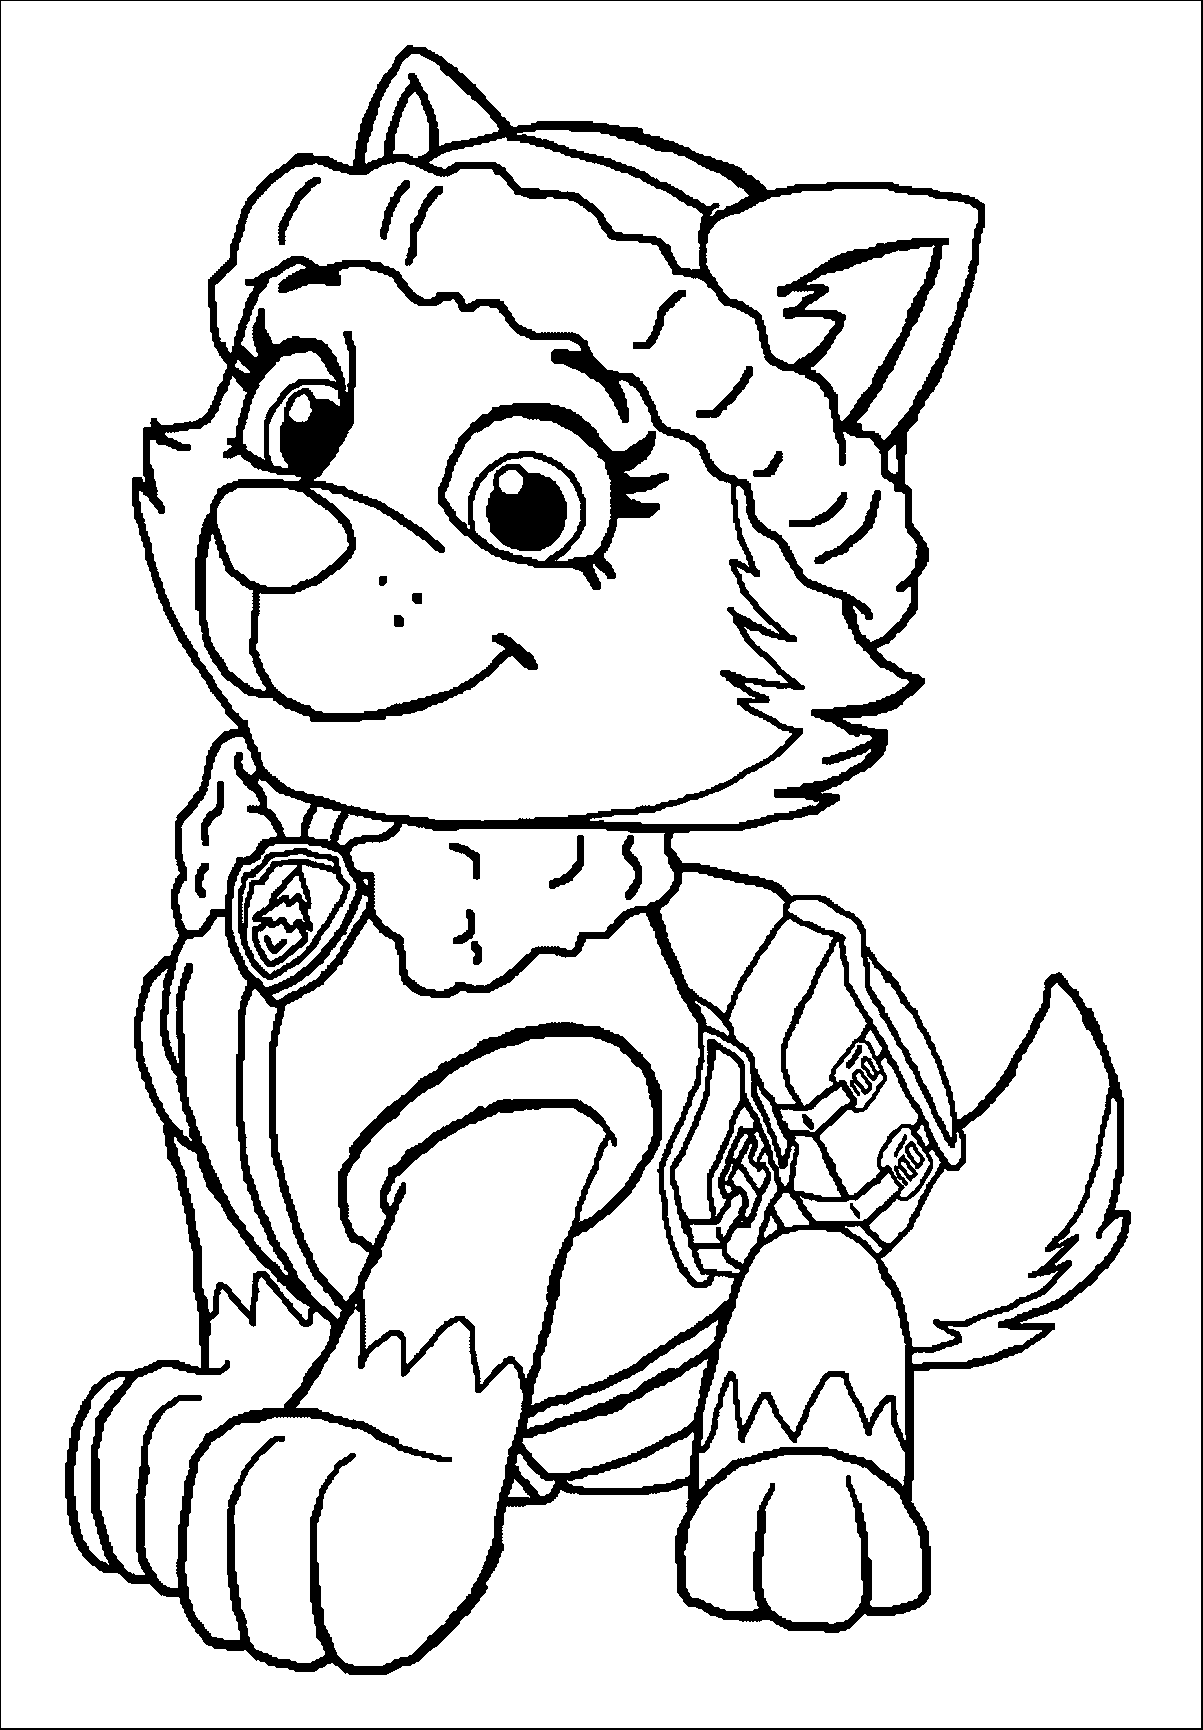 paw patrol coloring pages free free paw patrol coloring pages happiness is homemade patrol coloring free pages paw